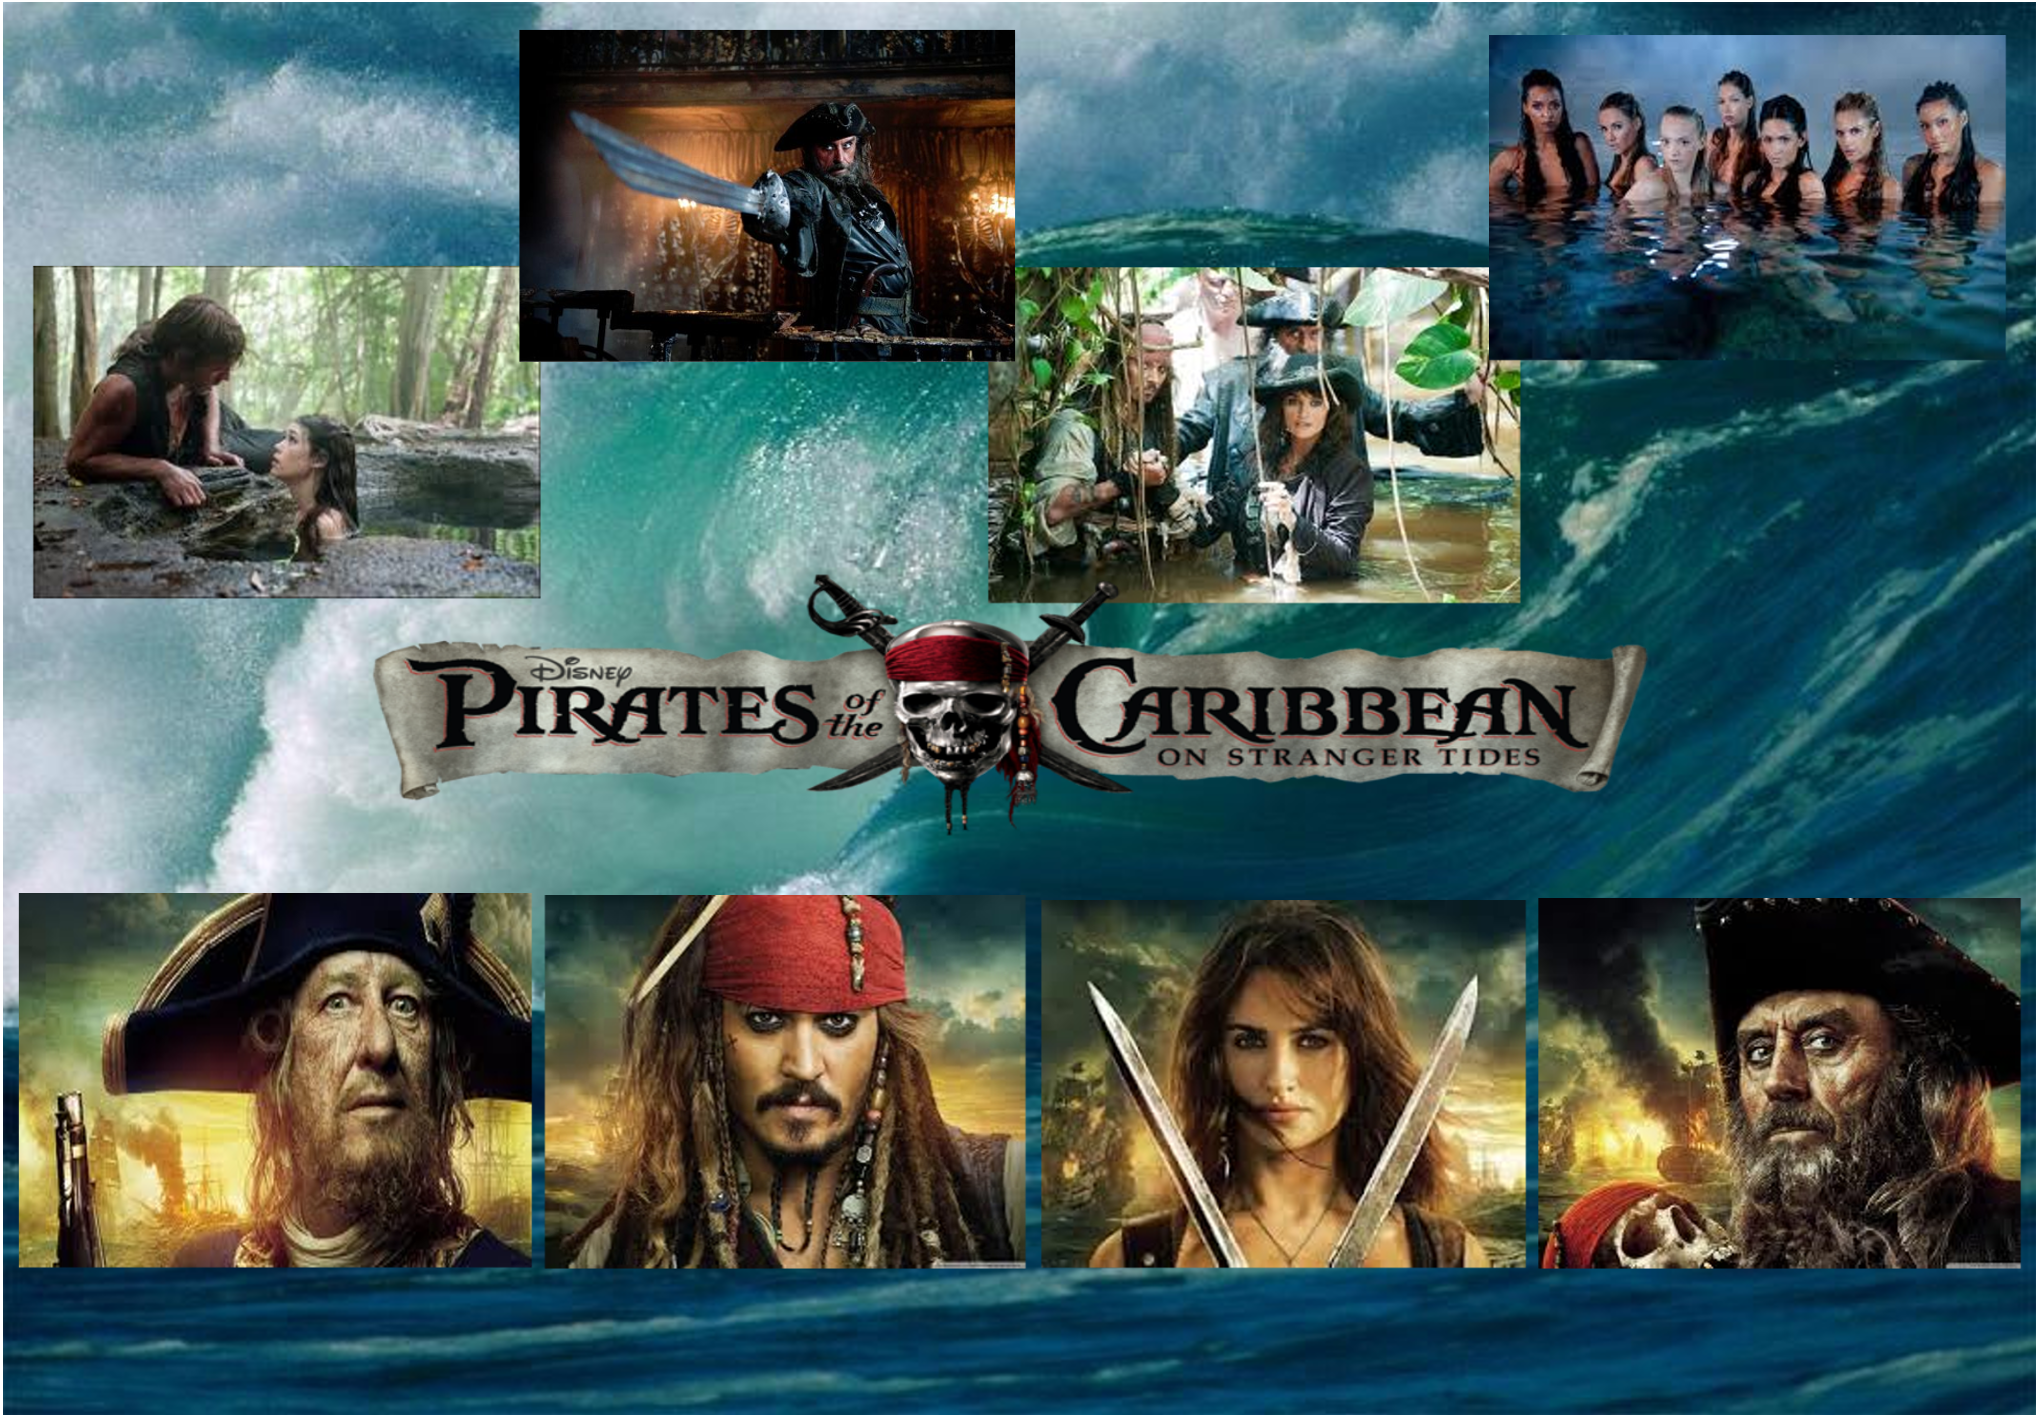 pirates of the caribbean 4 wallpaperlilmeglett on deviantart